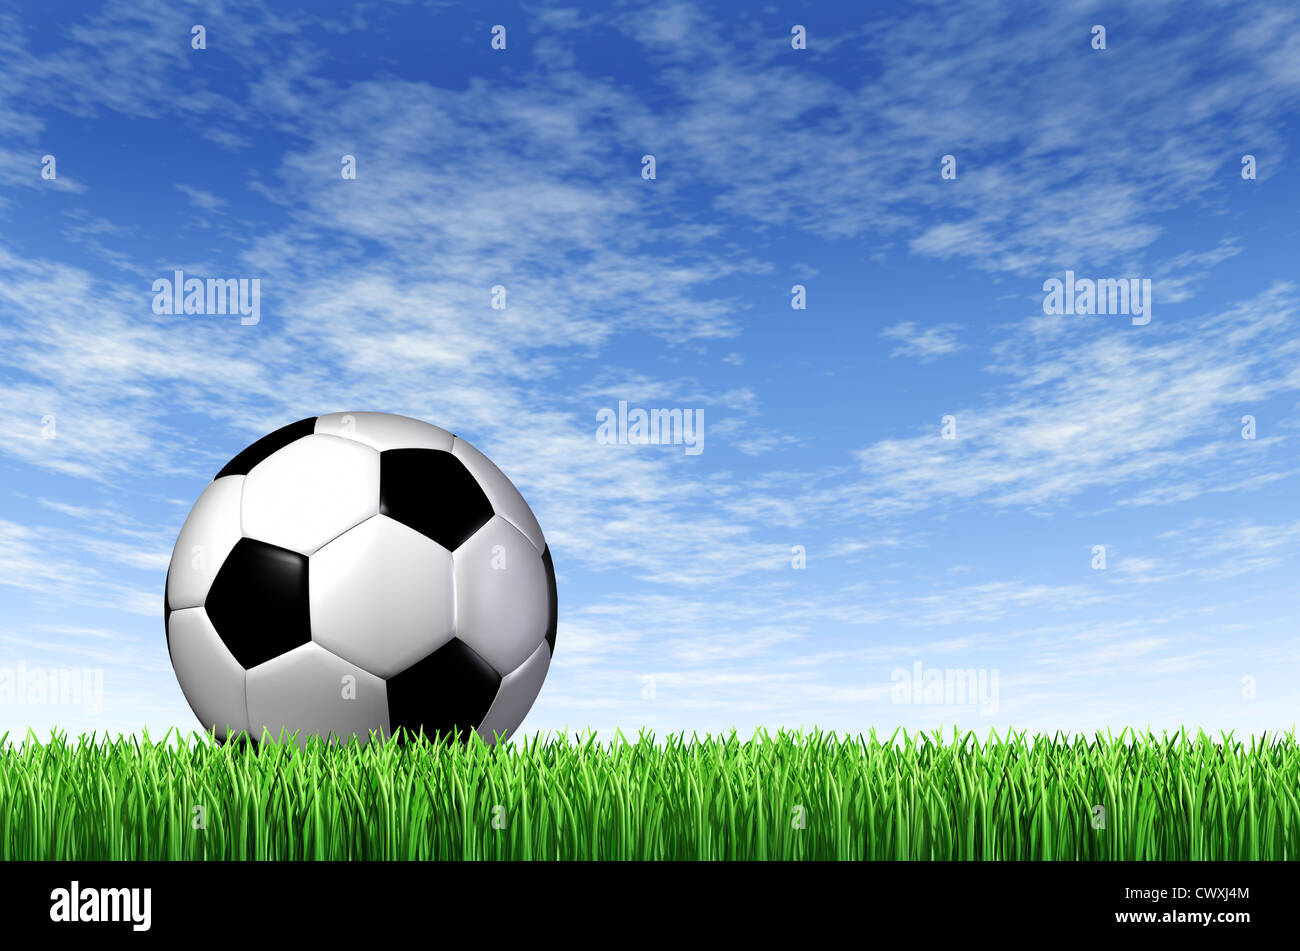 bfbfe6e77 Soccer Ball and grass field background with a blue sky and green european  football stadium turf as a concept of fun summer team